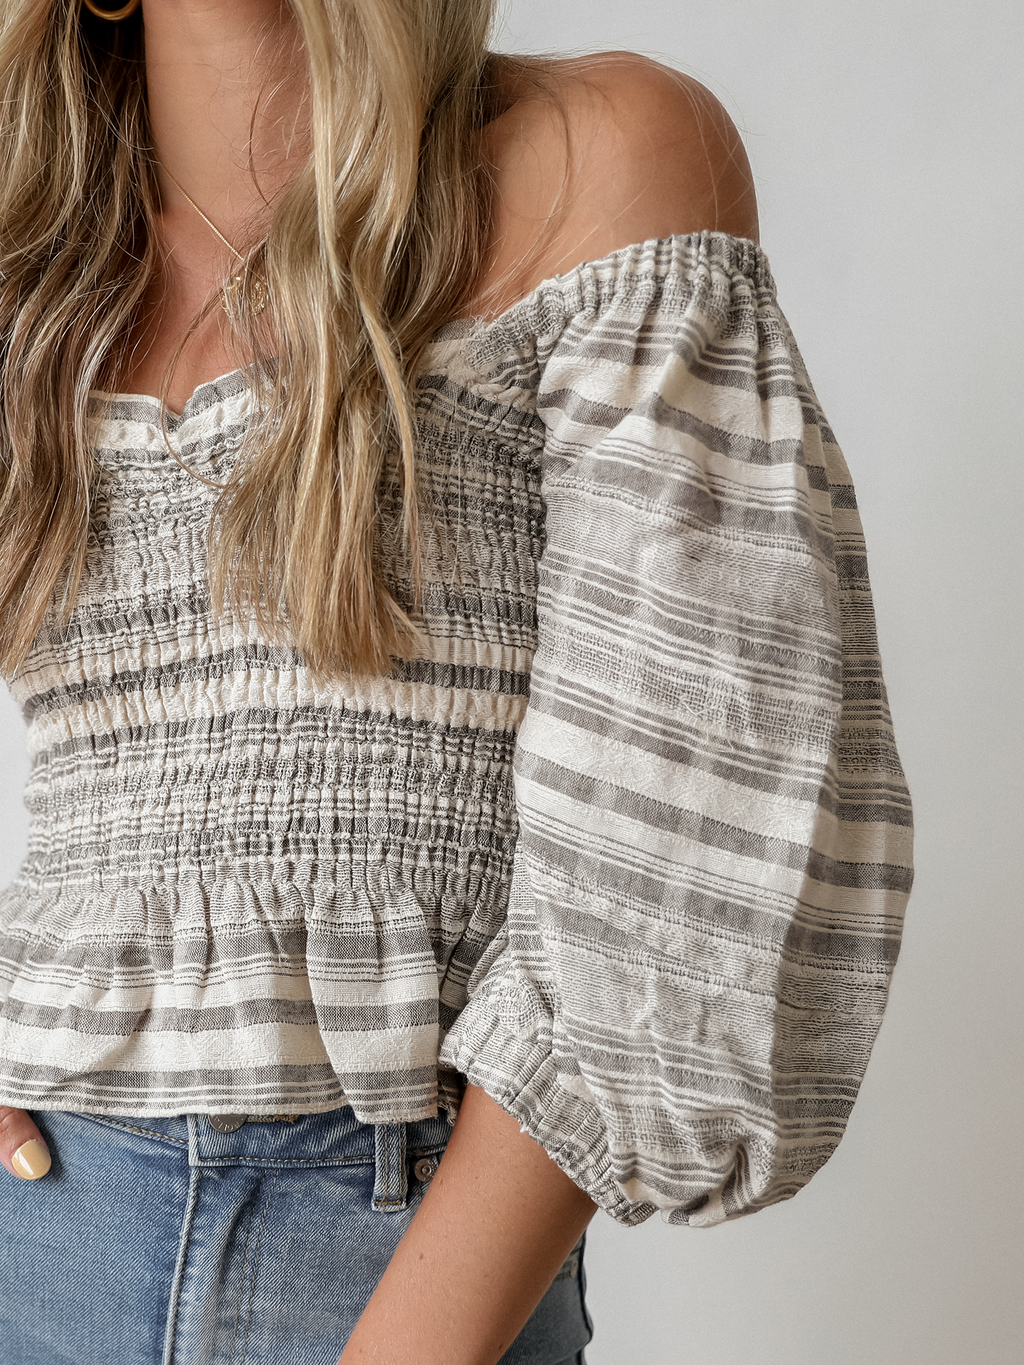 Puff Sleeve Crop Top - Stitch And Feather